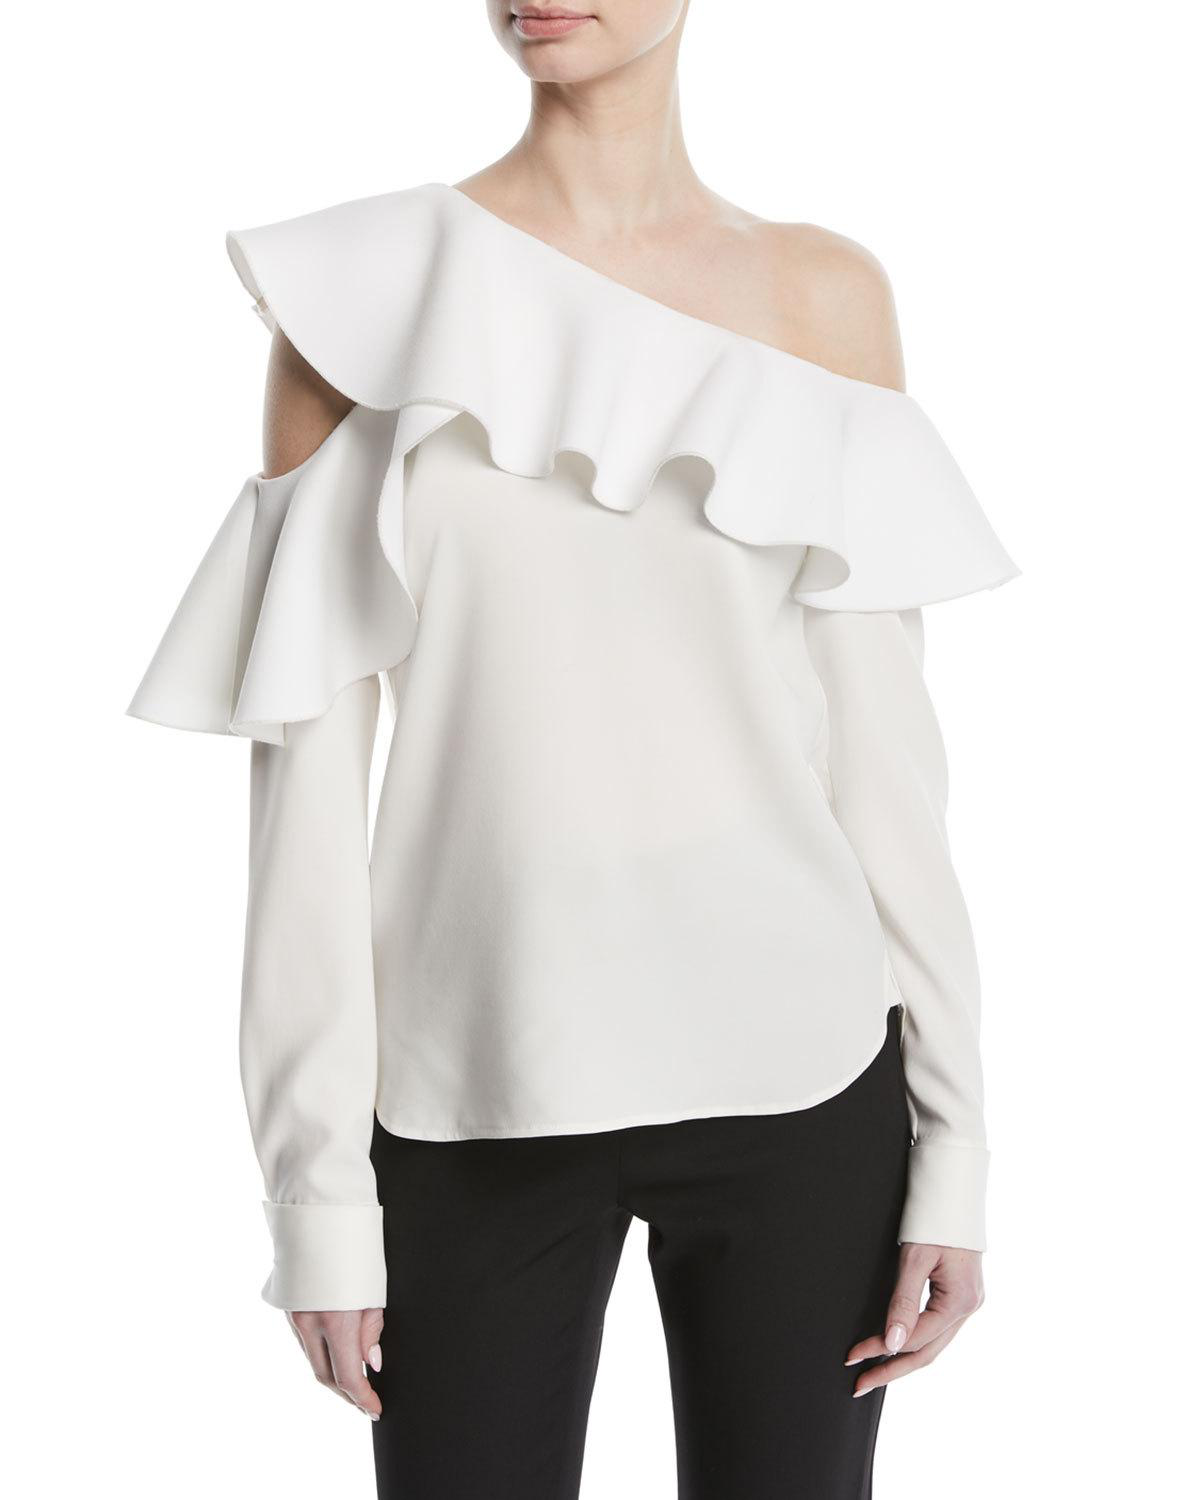 ec33d87388ae5 Oscar De La Renta Woman One-Shoulder Ruffled Stretch-Silk Blouse White